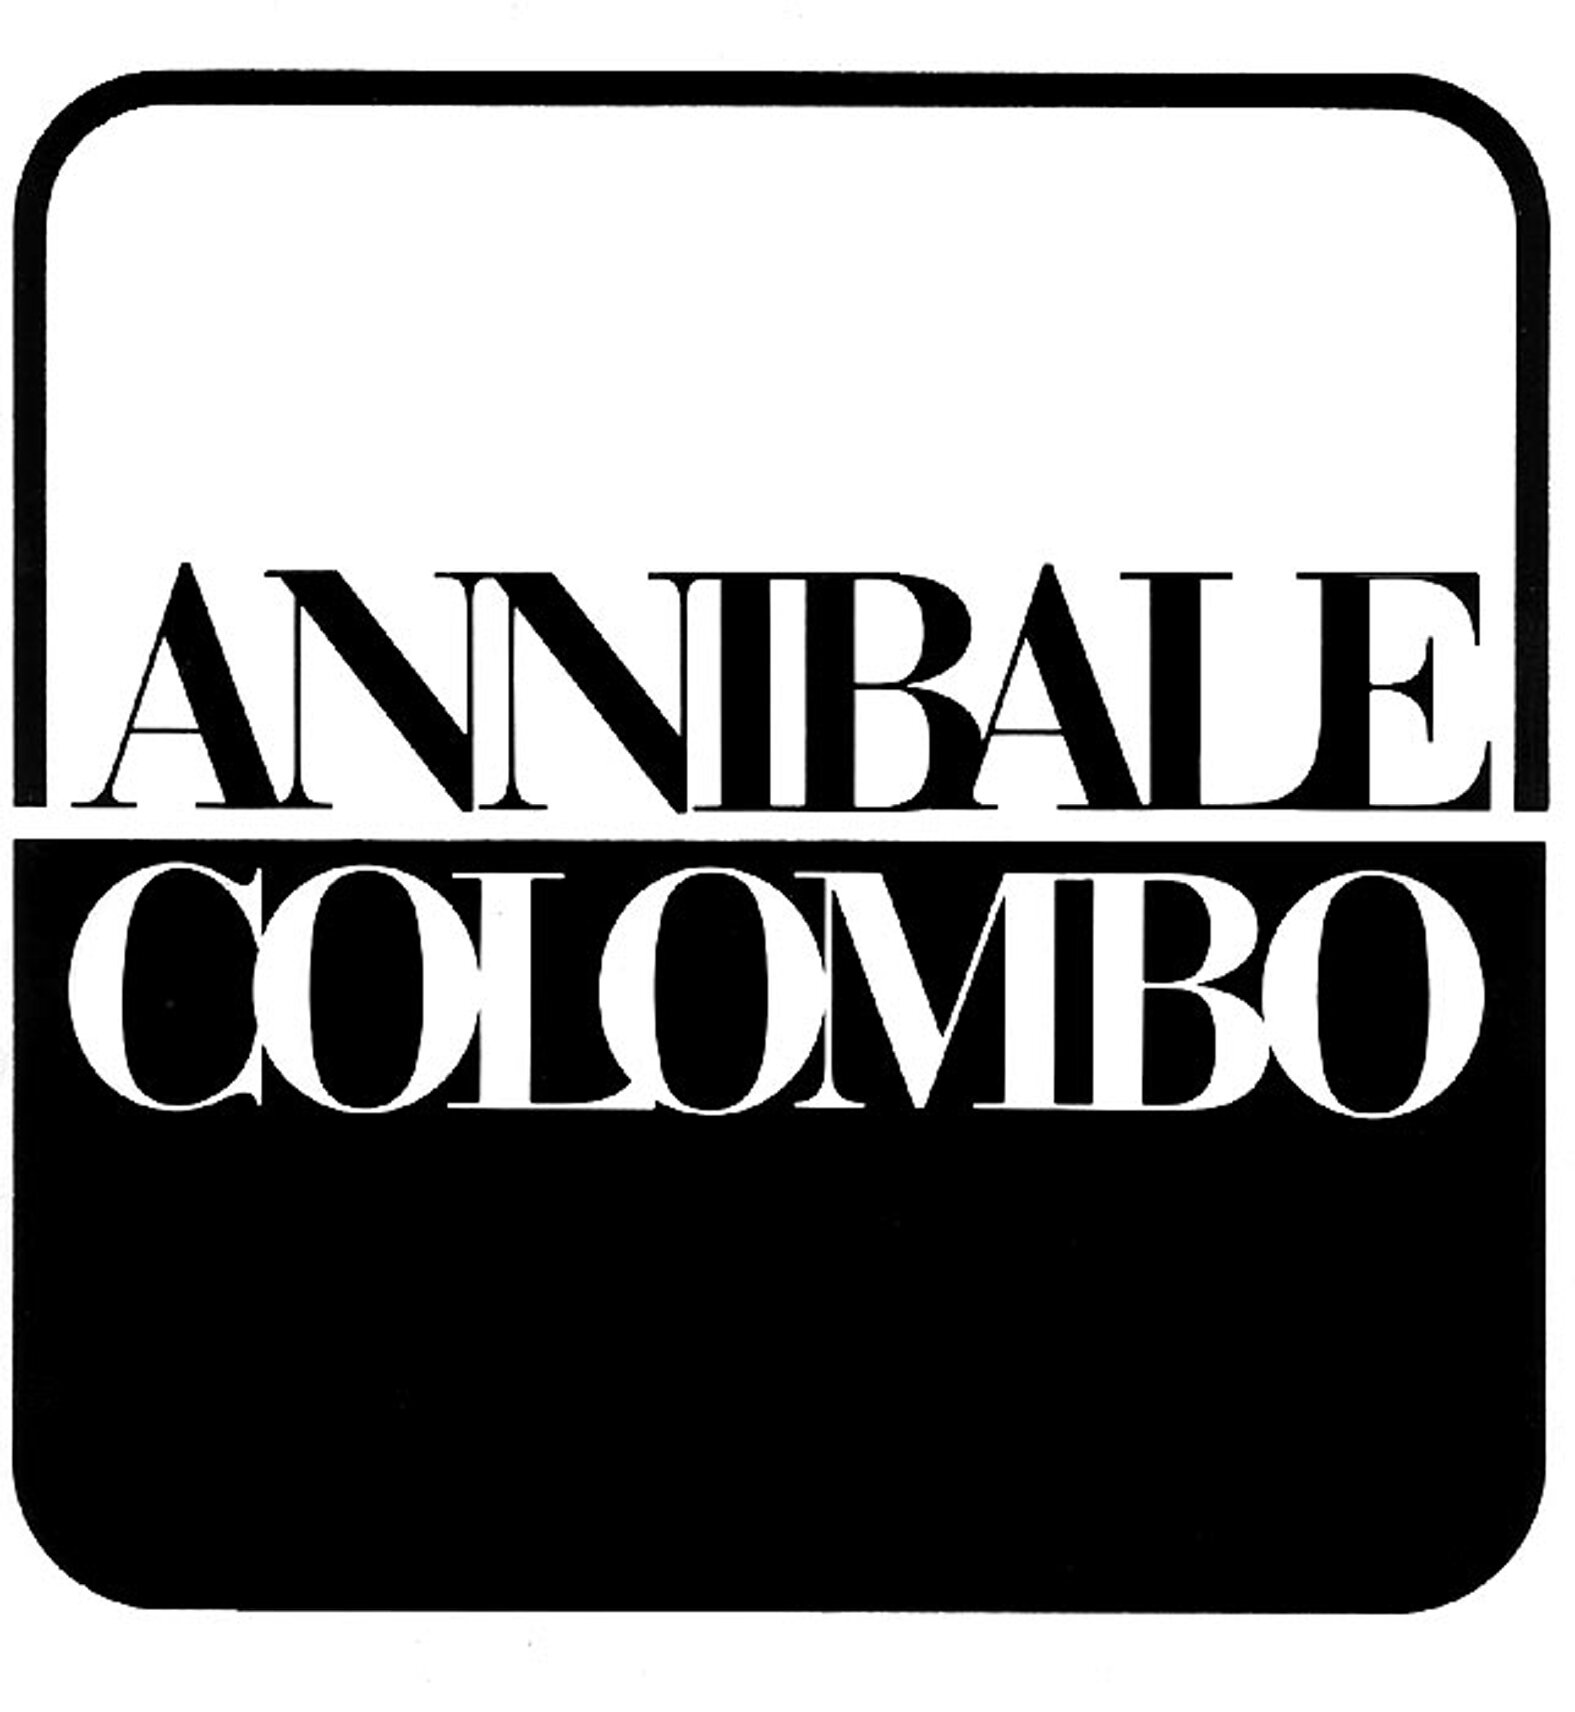 Annibale Colombo Mobili Classici.Annibale Colombo Wayfair